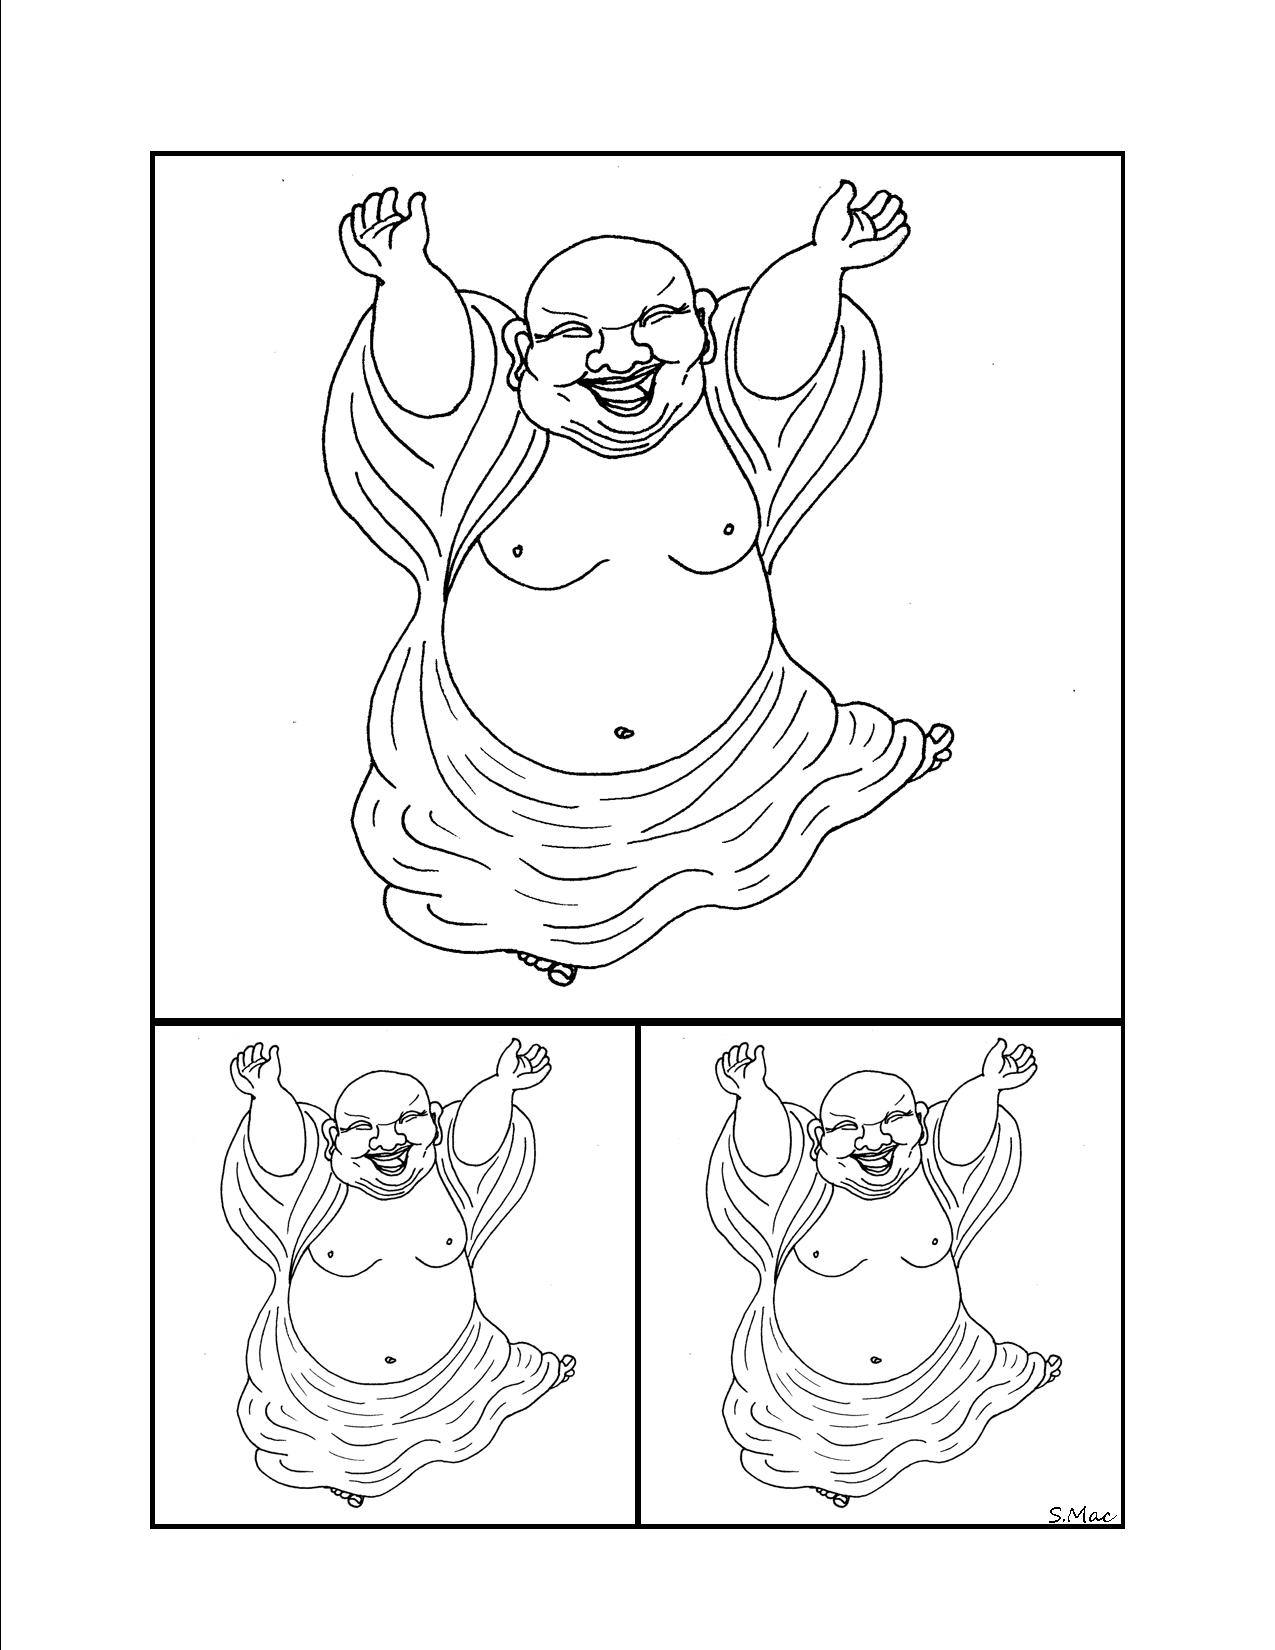 Pop Art Coloring Pages | S.Mac\'s Place to Be